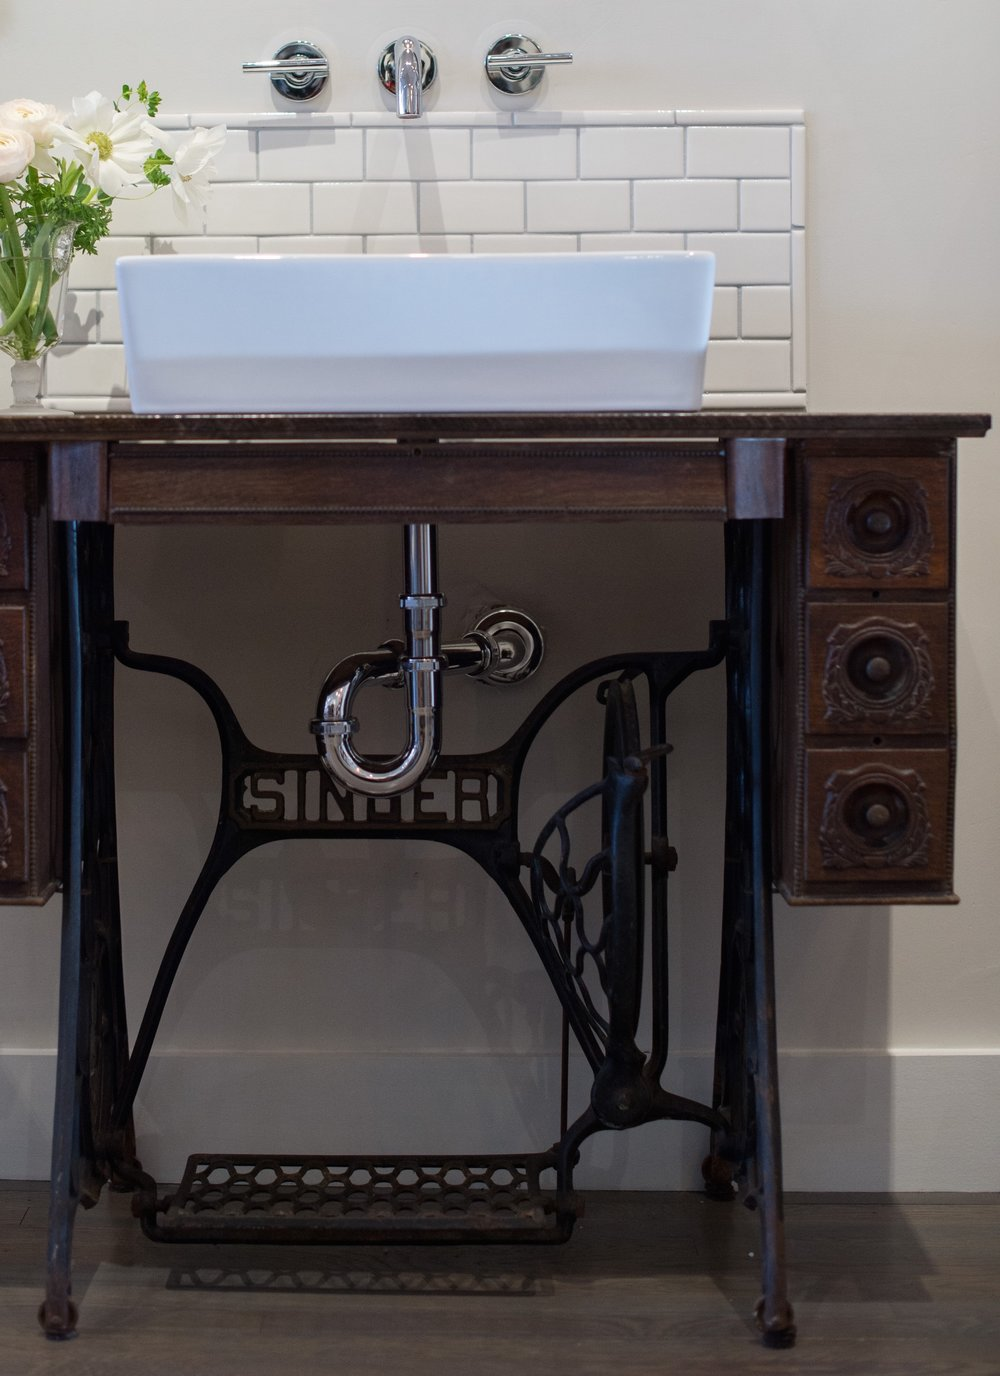 Because the original top had a cutout for the sewing machine and was in rough shape, we had it rebuilt and stained to match.  The vessel sink and wall mounted faucet adds a modern contrast to the antique details of the original drawer fronts and signature wrought iron base.